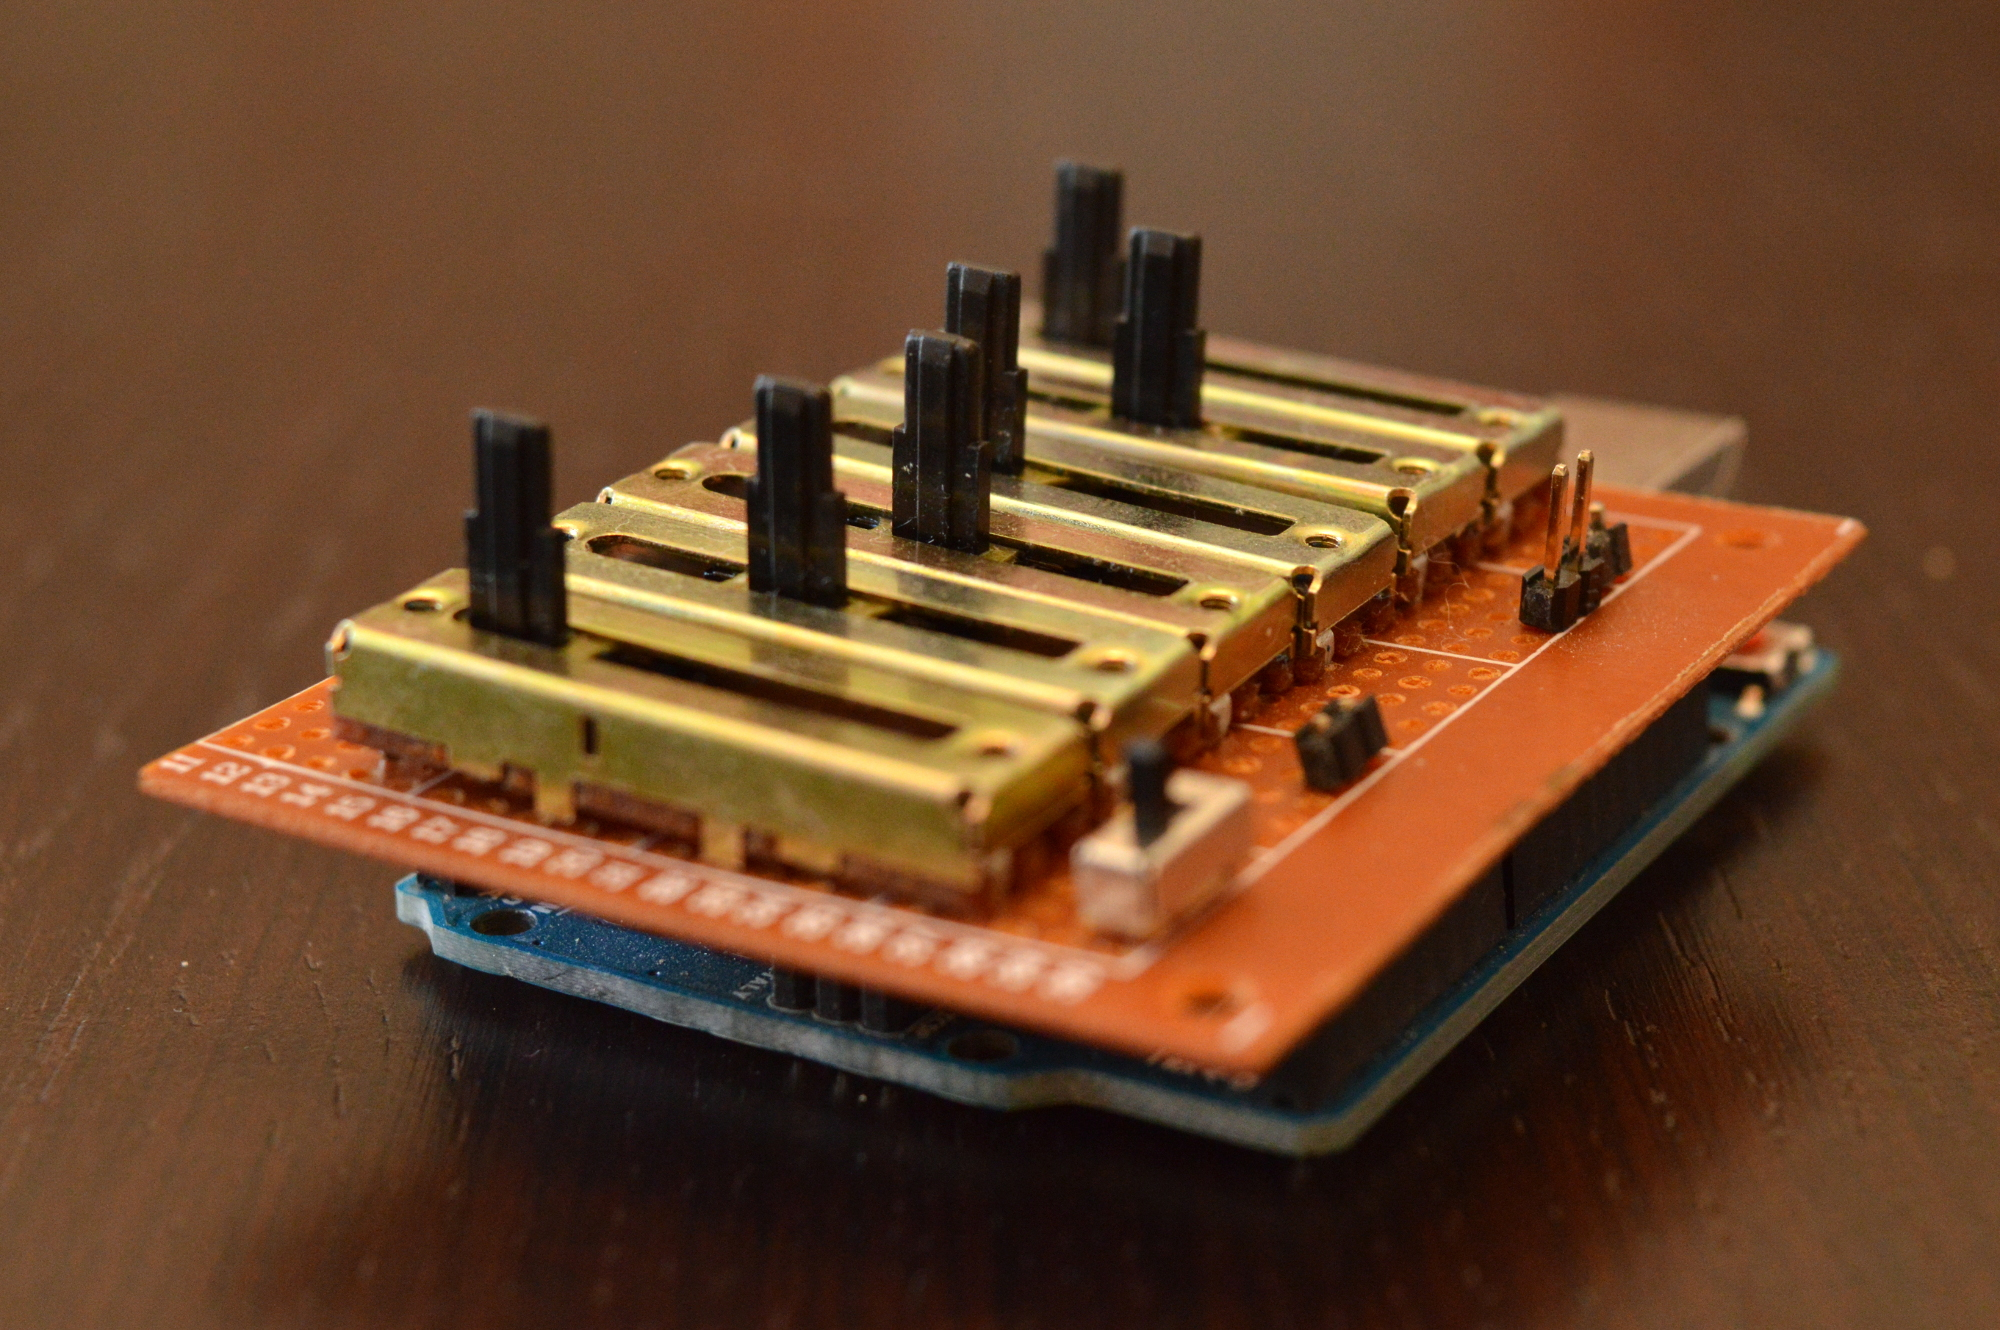 Come programmare uno step sequencer con Arduino